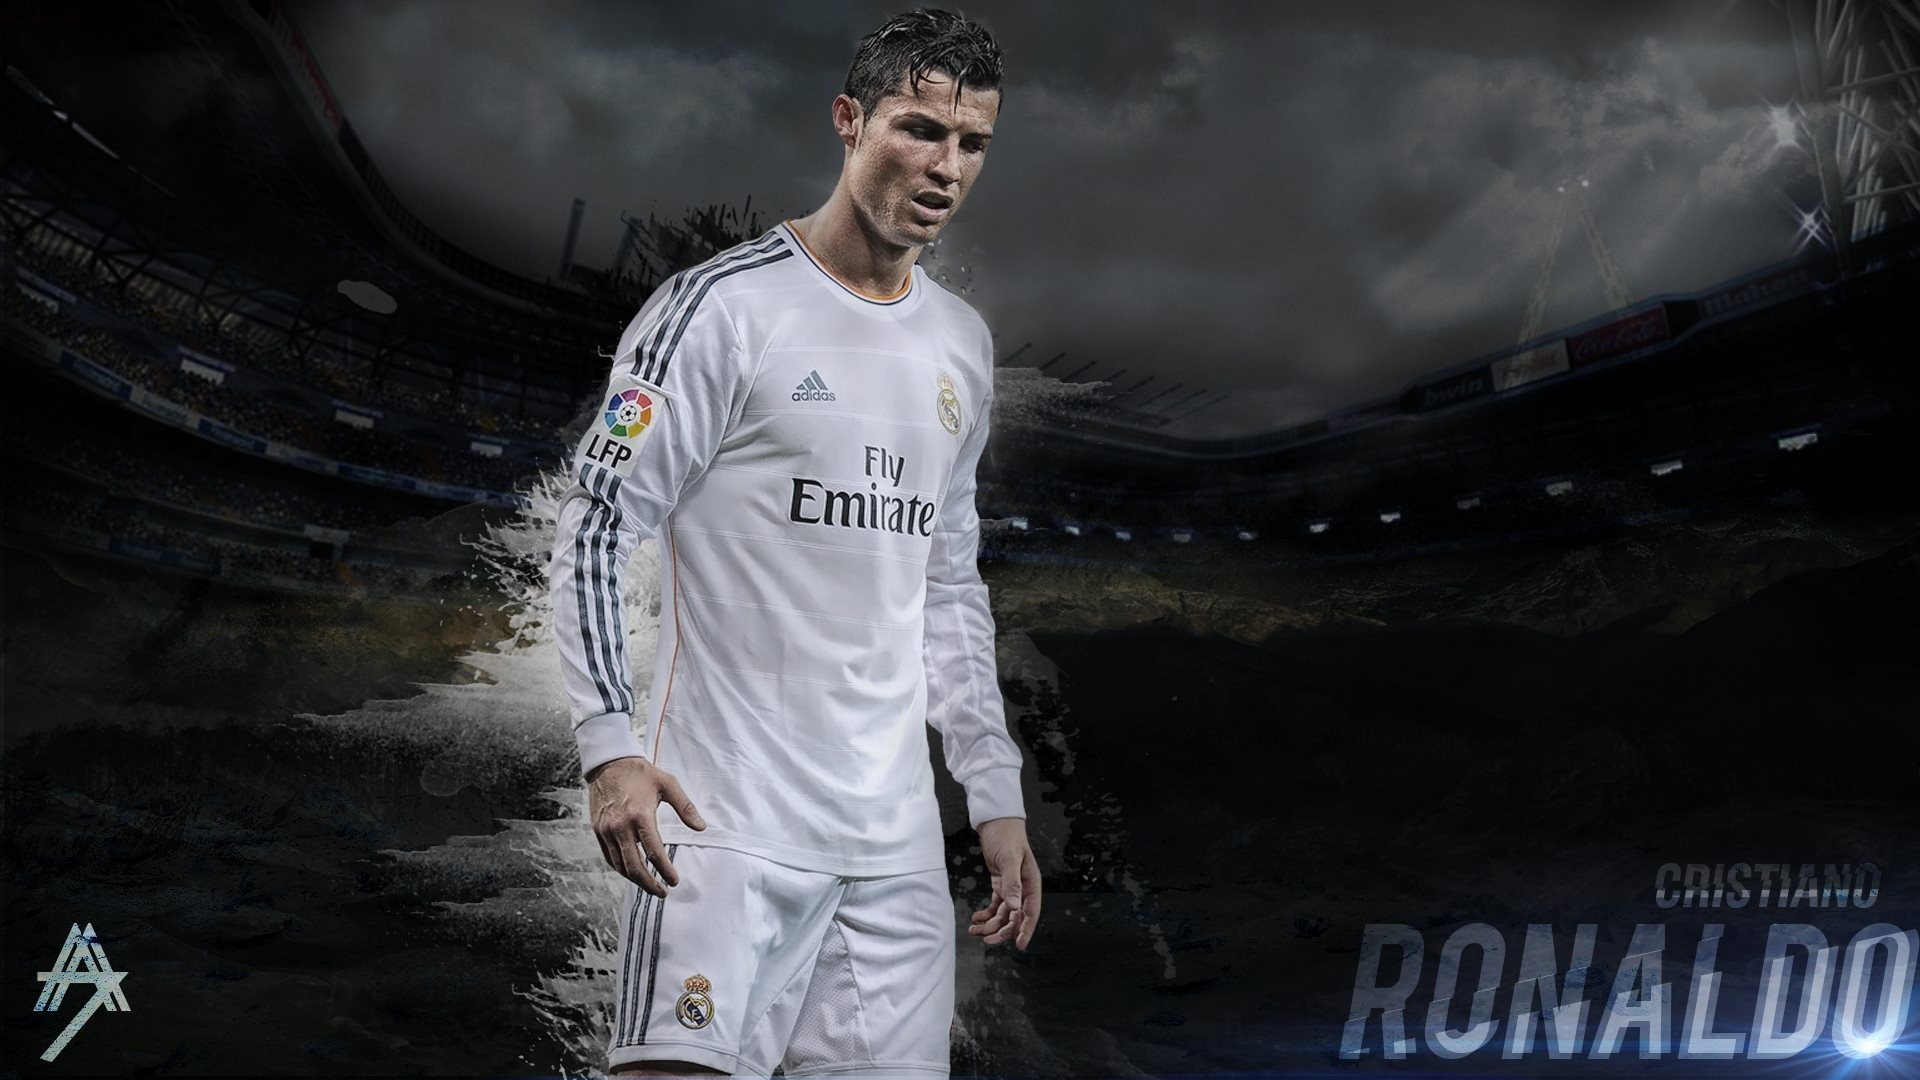 cristiano ronaldo wallpaper 2017 hd – photo #8. Watch32 Watch Movies Online  Free in HD at Watch32comm